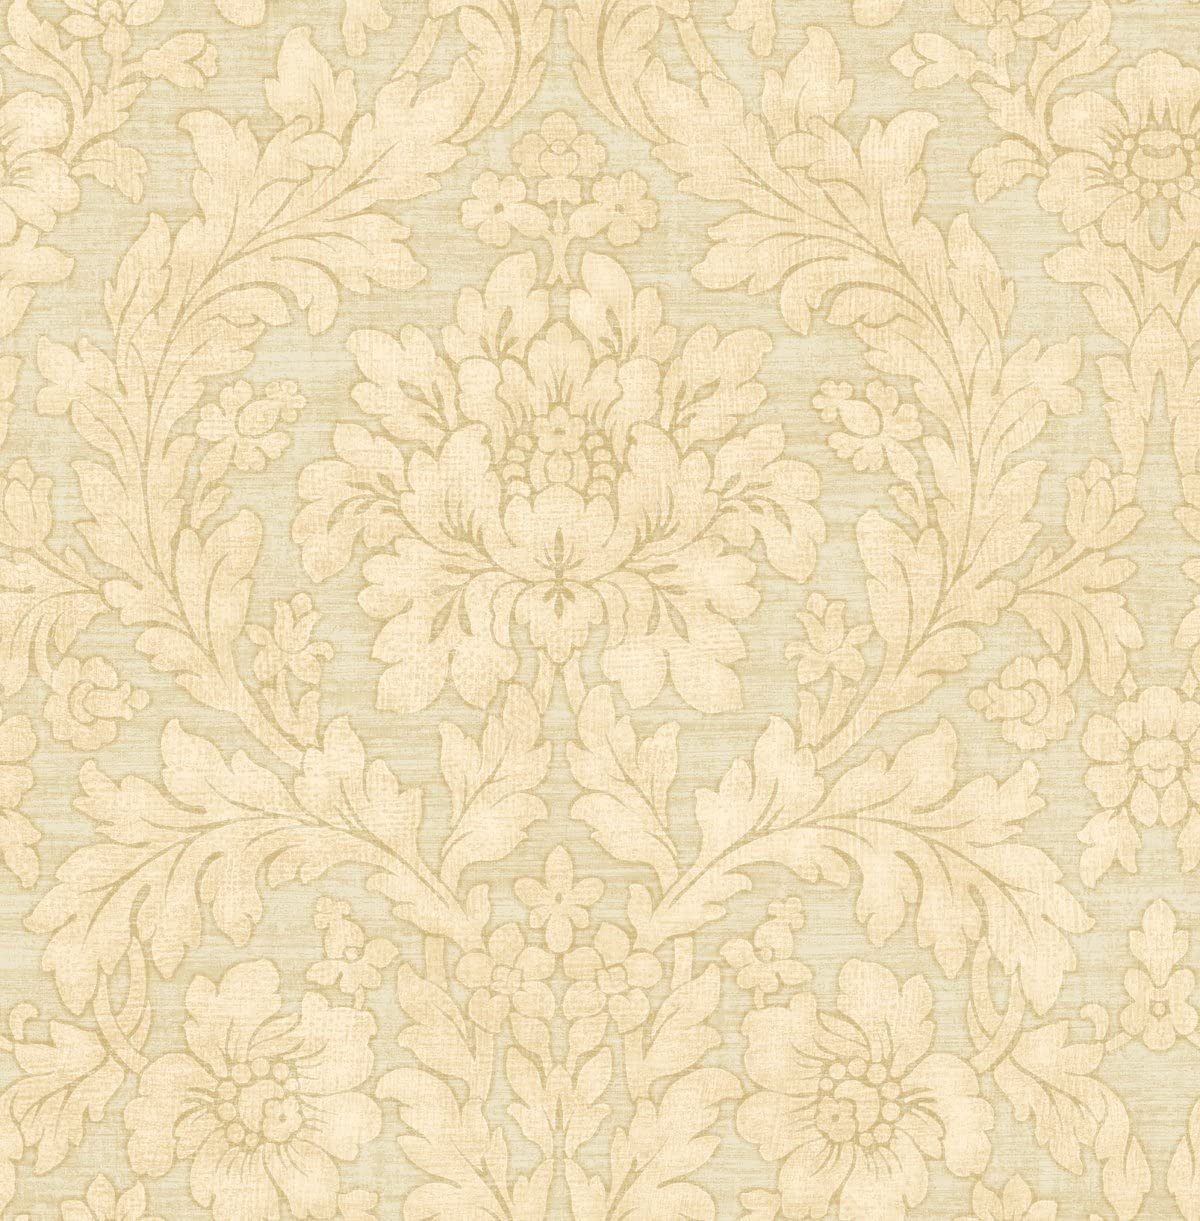 Floral Vintage Wallpaper Damask Victorian Sand Nude Cream Arts And